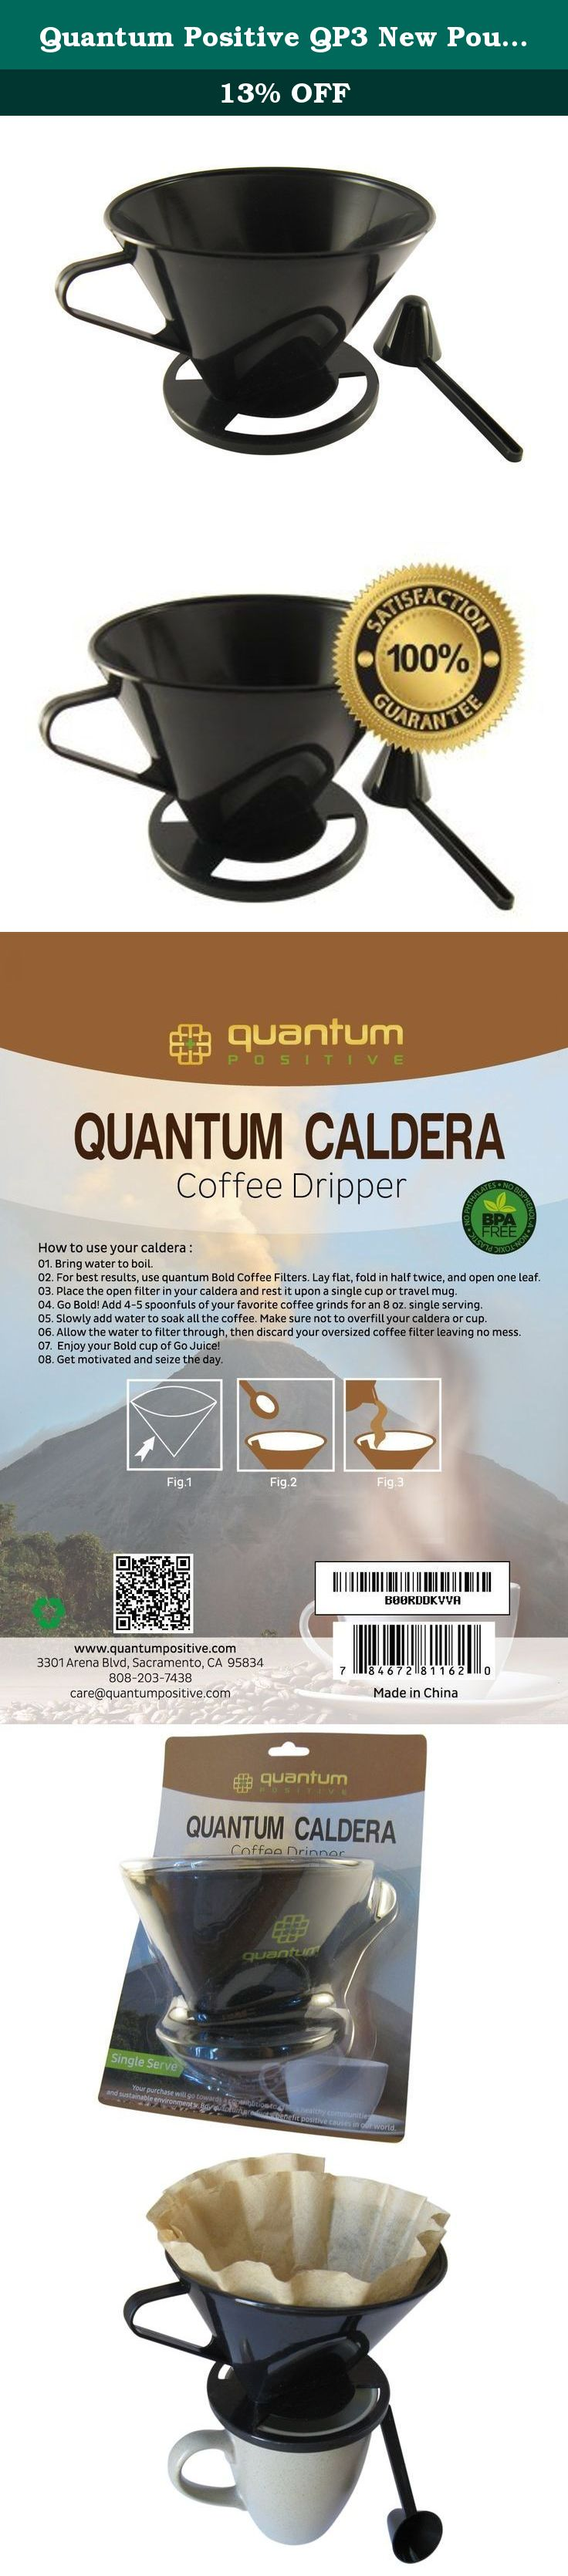 Quantum Positive QP3 New Pour Over Coffee Cone Single Serve Reusable Perfect for Cone Filters